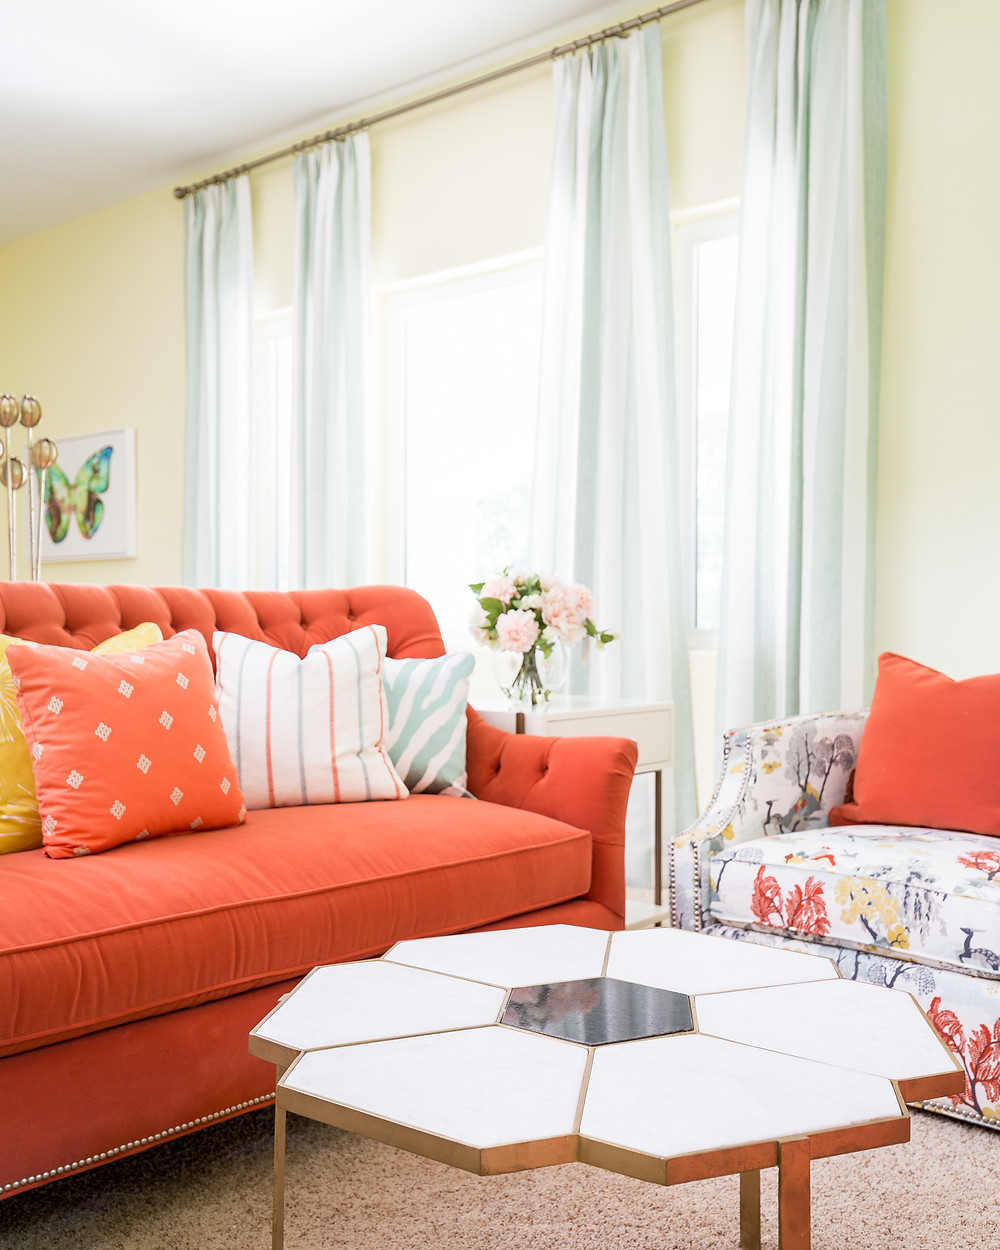 Coral sofa with yellow walls and striped draperies